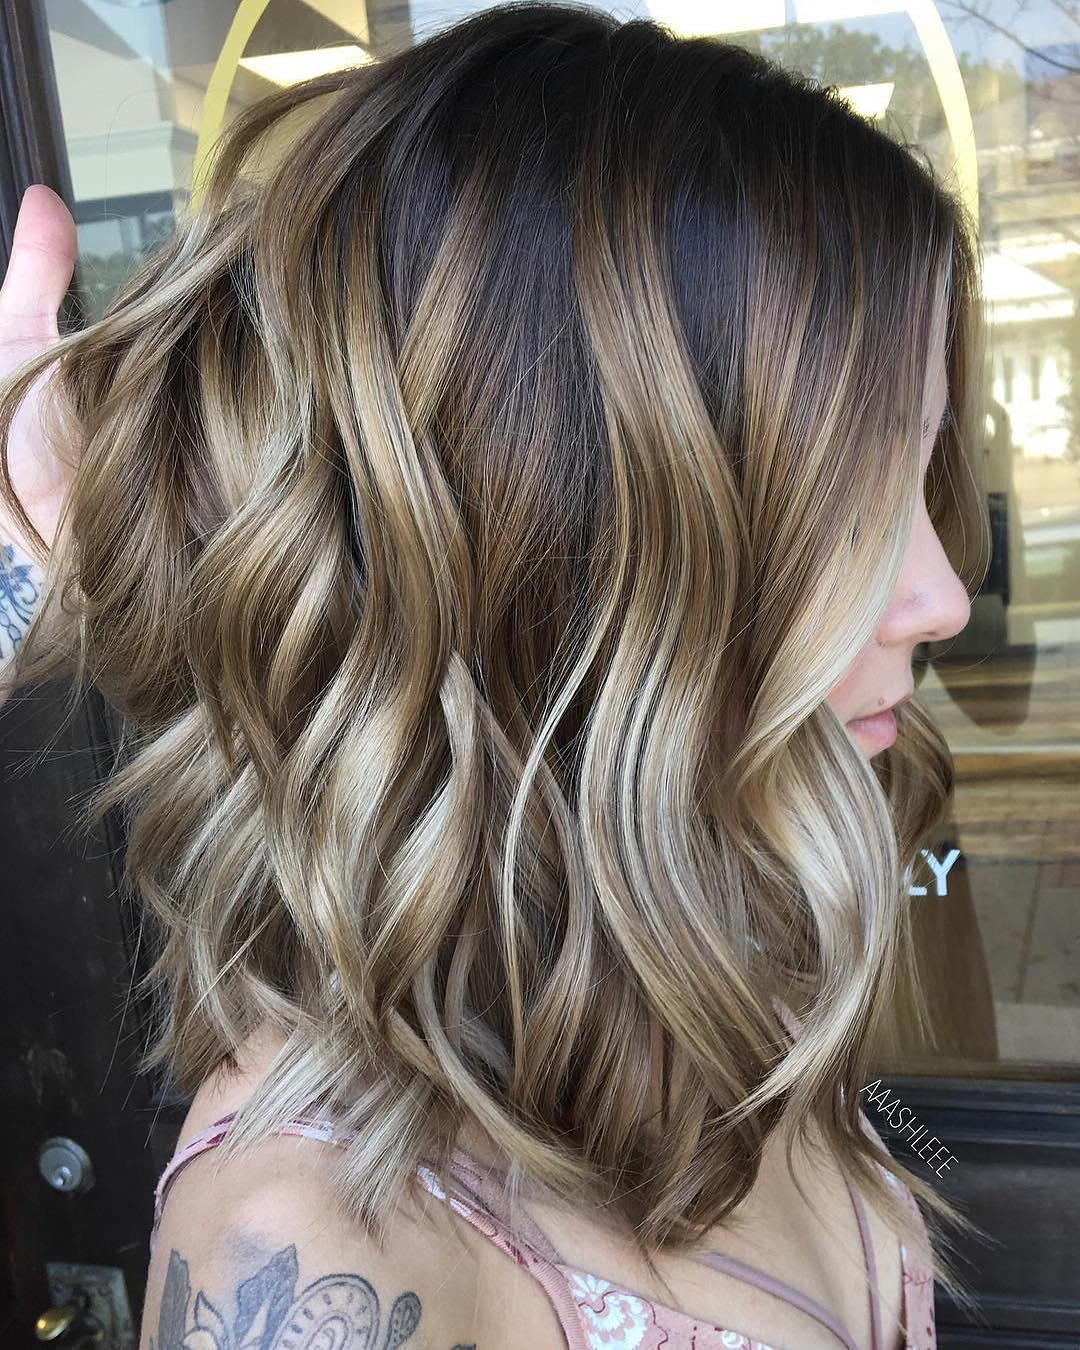 10 Ombre Balayage Hairstyles For Medium Length Hair, Hair Color 2019 In 2017 Medium Hairstyles With Balayage (View 3 of 20)